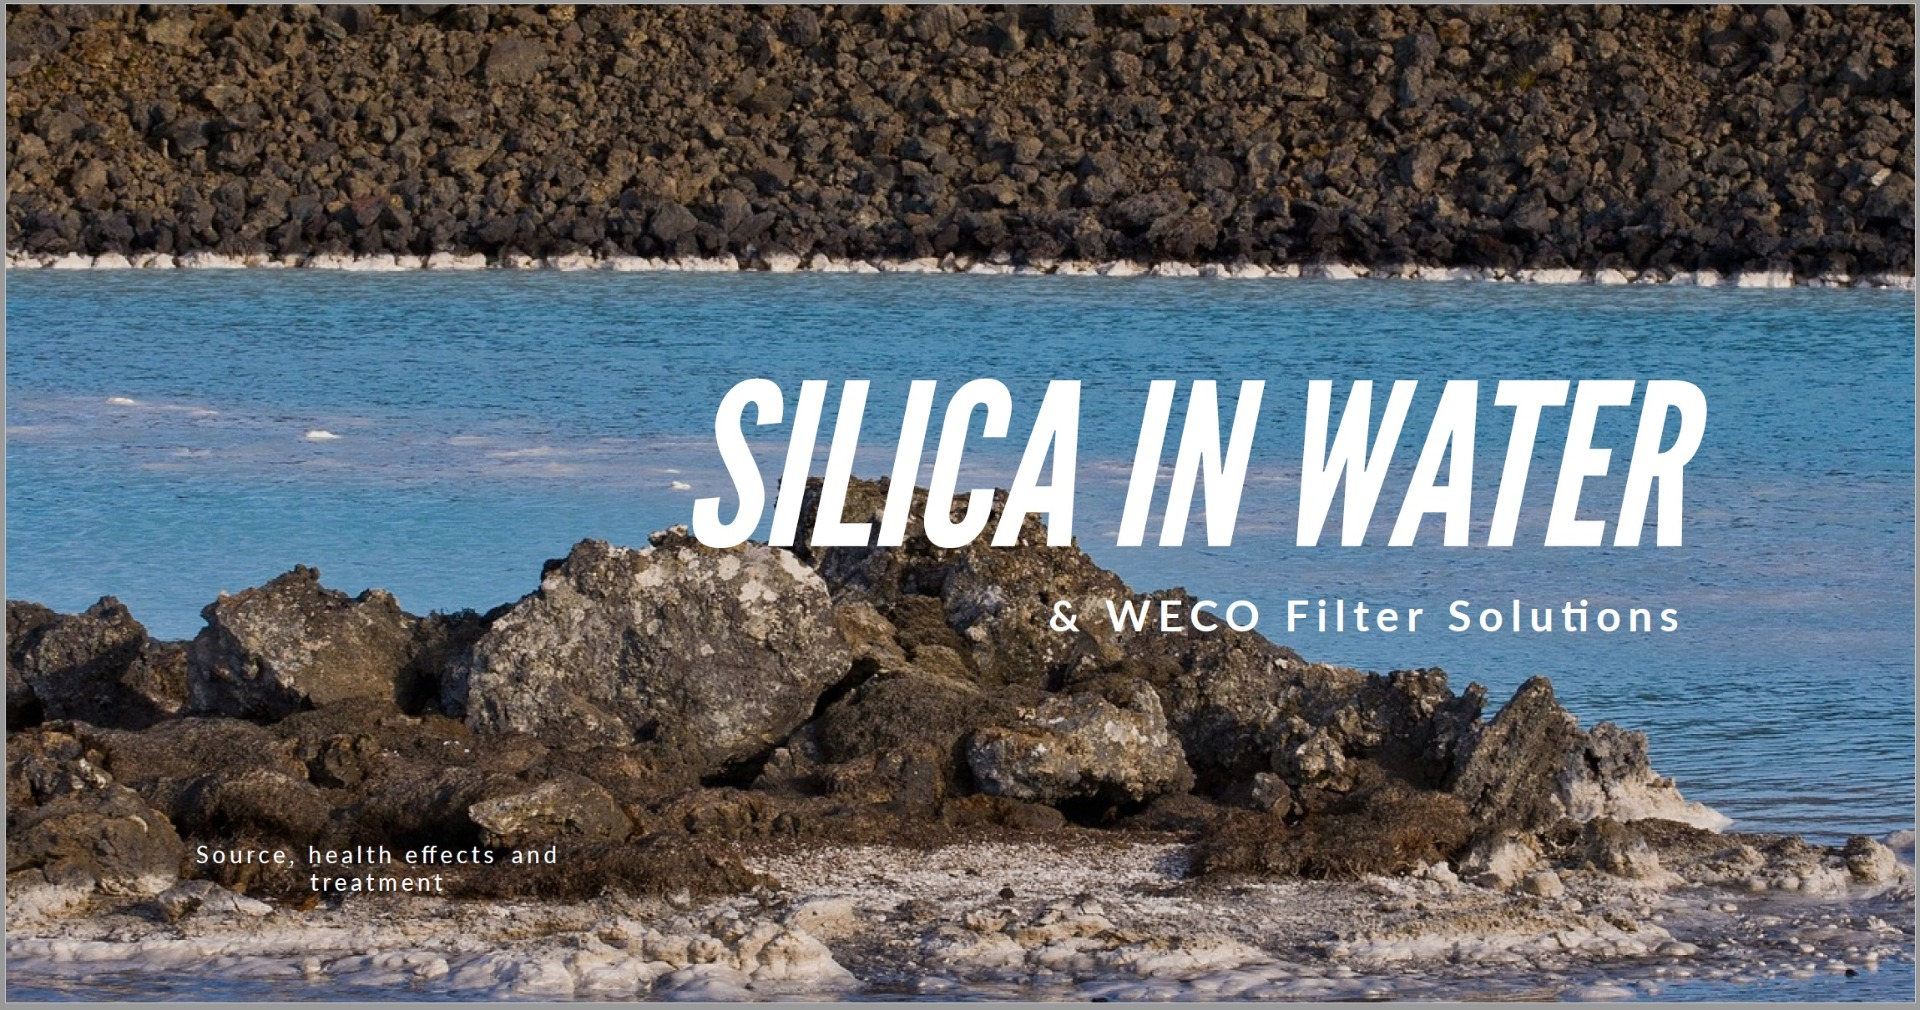 Silica in Water